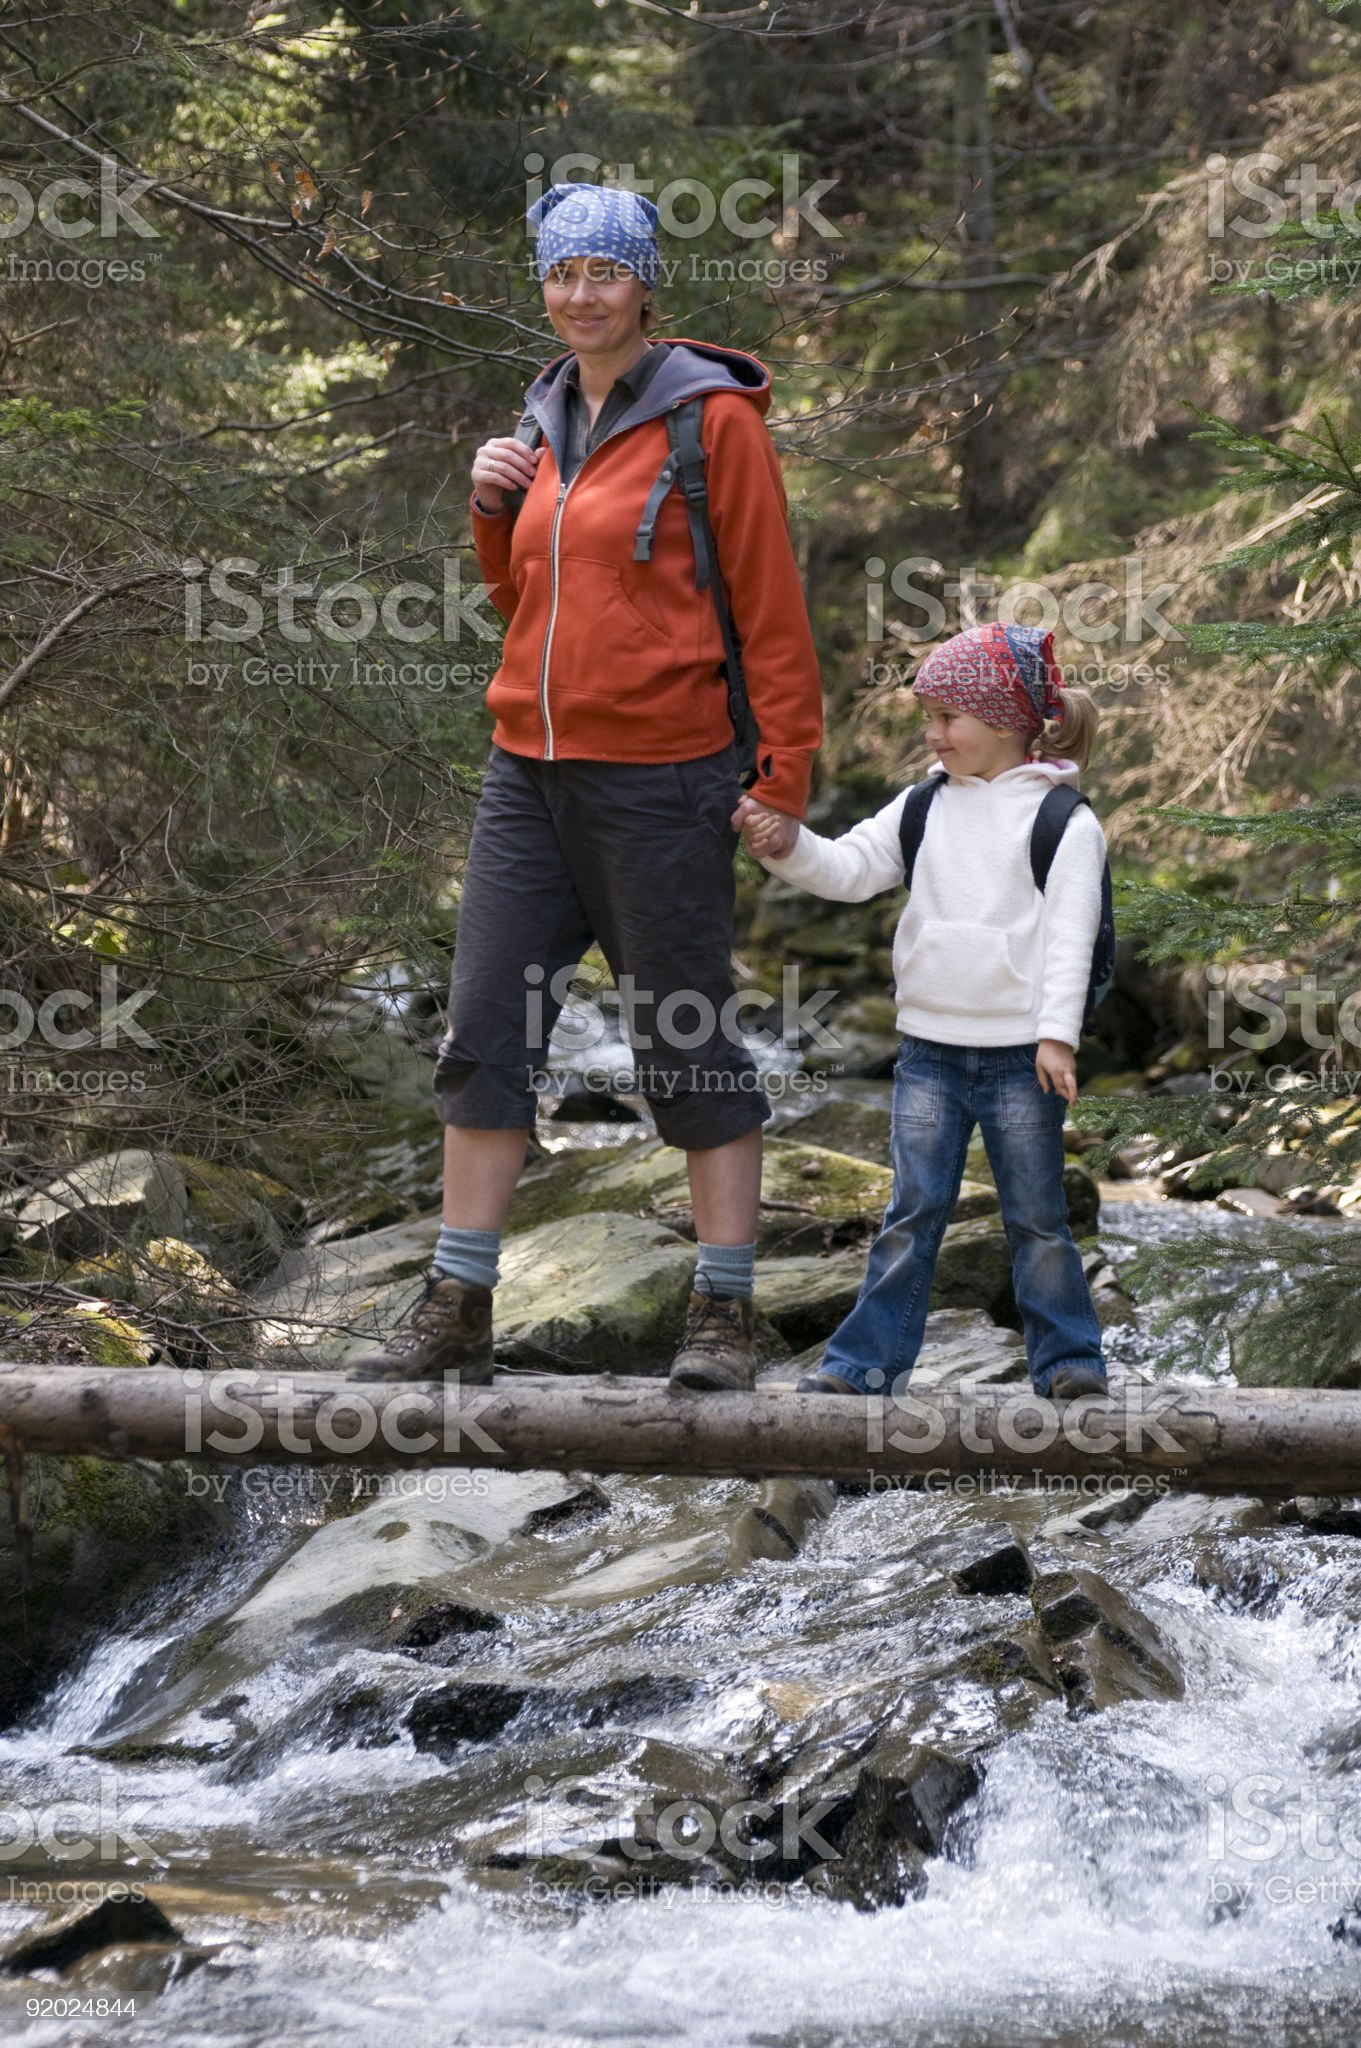 Mountain trip royalty-free stock photo